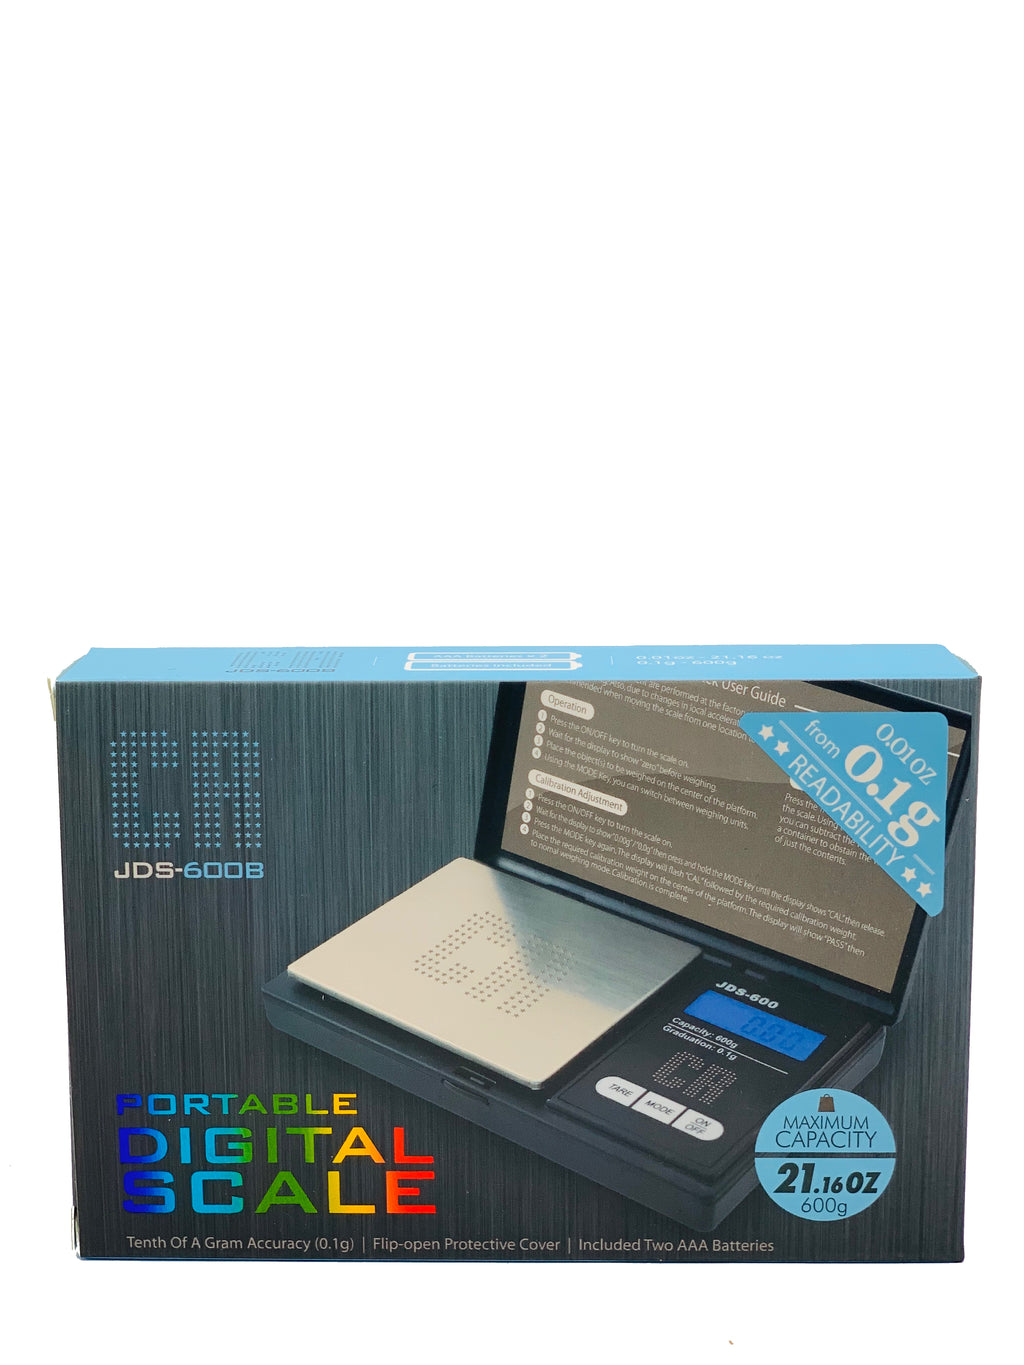 CR DIGITAL SCALE JDS-600B 0.1G